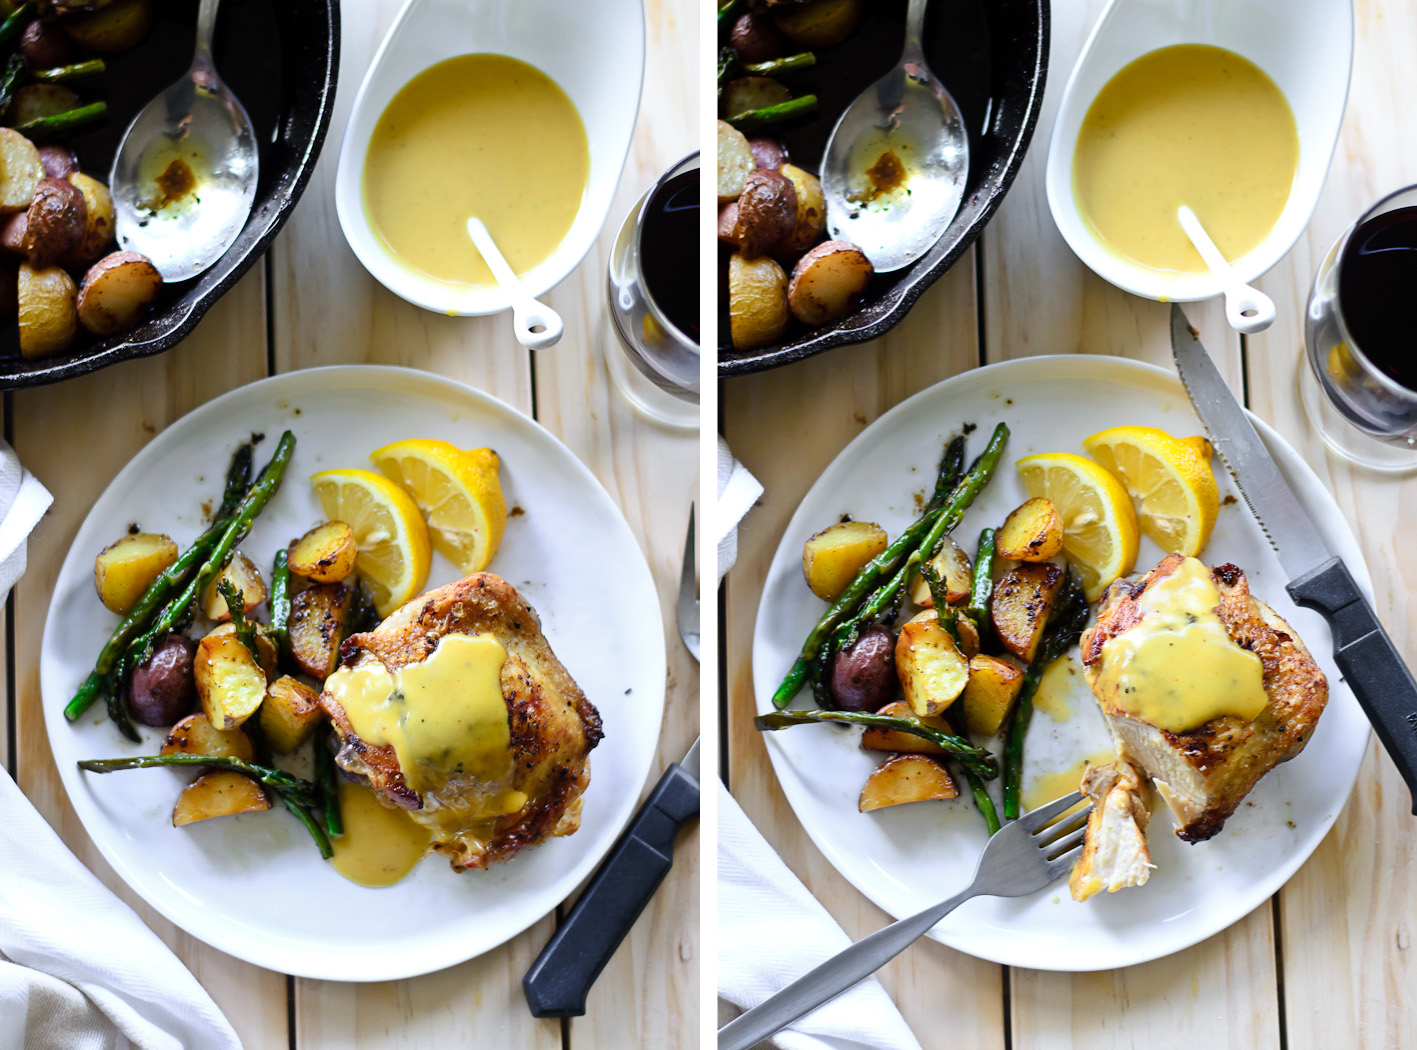 Pan Roasted Chicken with Honey Mustard Sauce